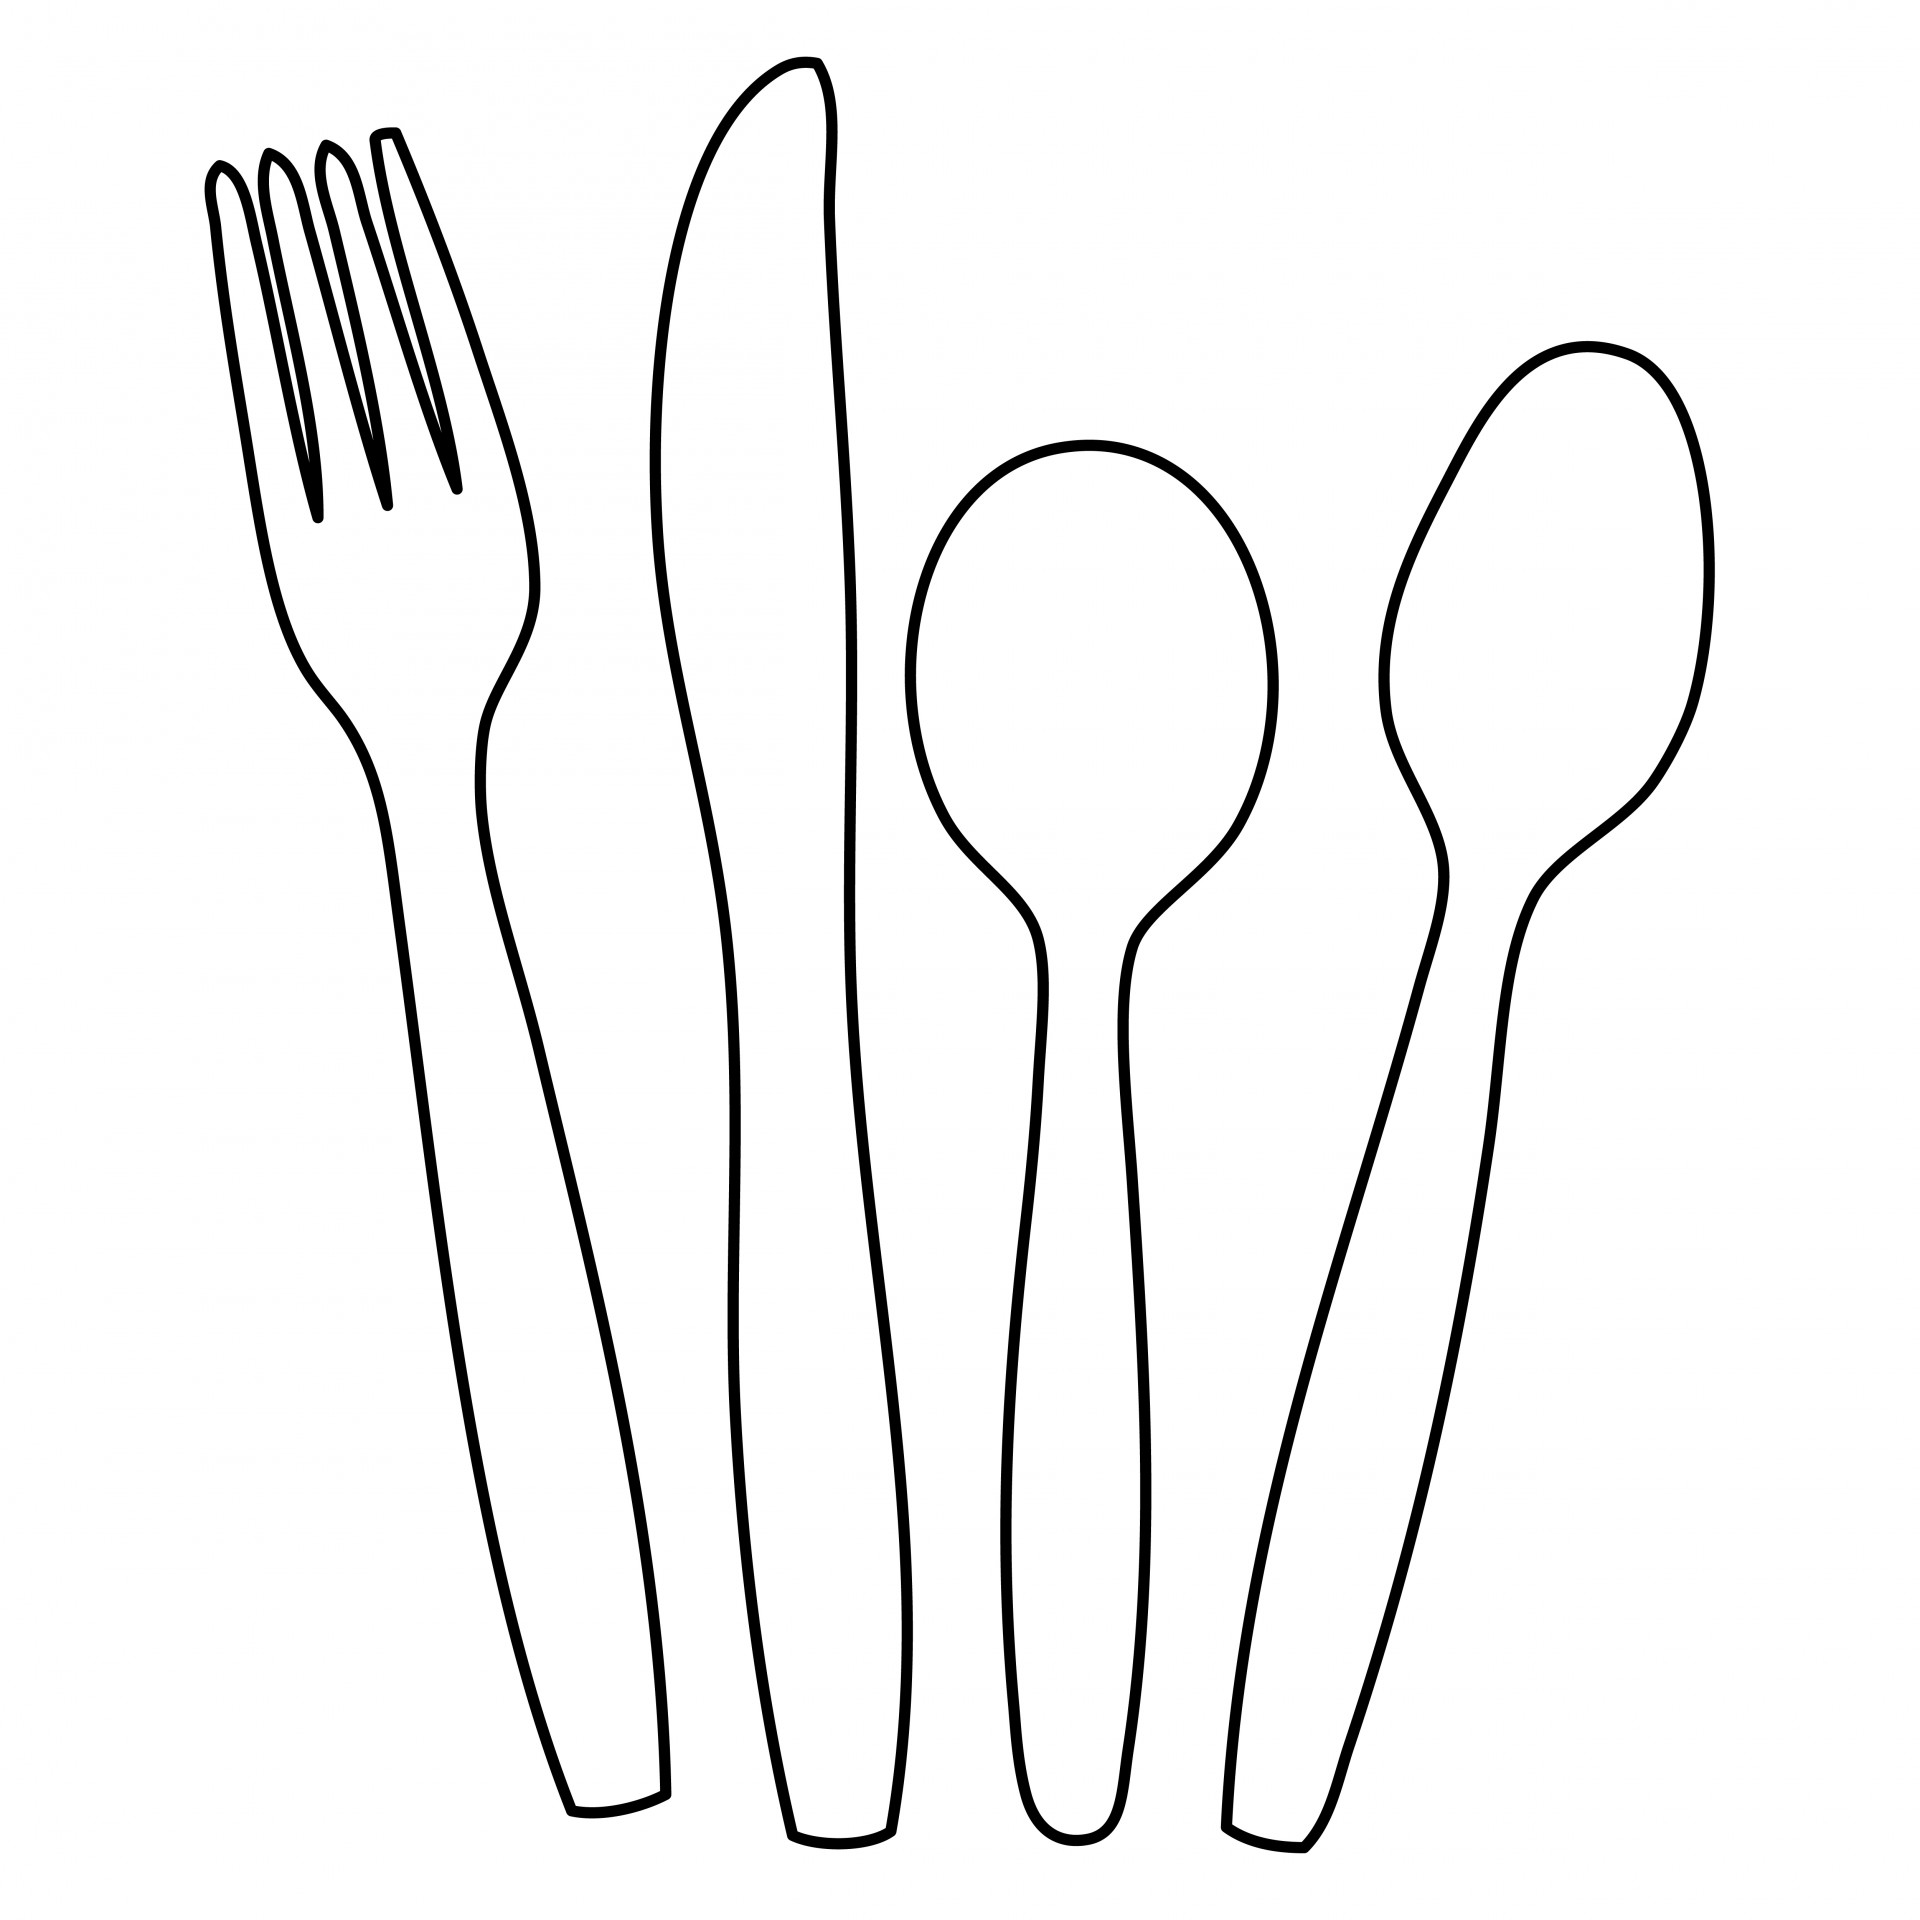 Free clipart of fork spoon and knife border png transparent library Spoon Fork Cliparts | Free download best Spoon Fork Cliparts on ... png transparent library